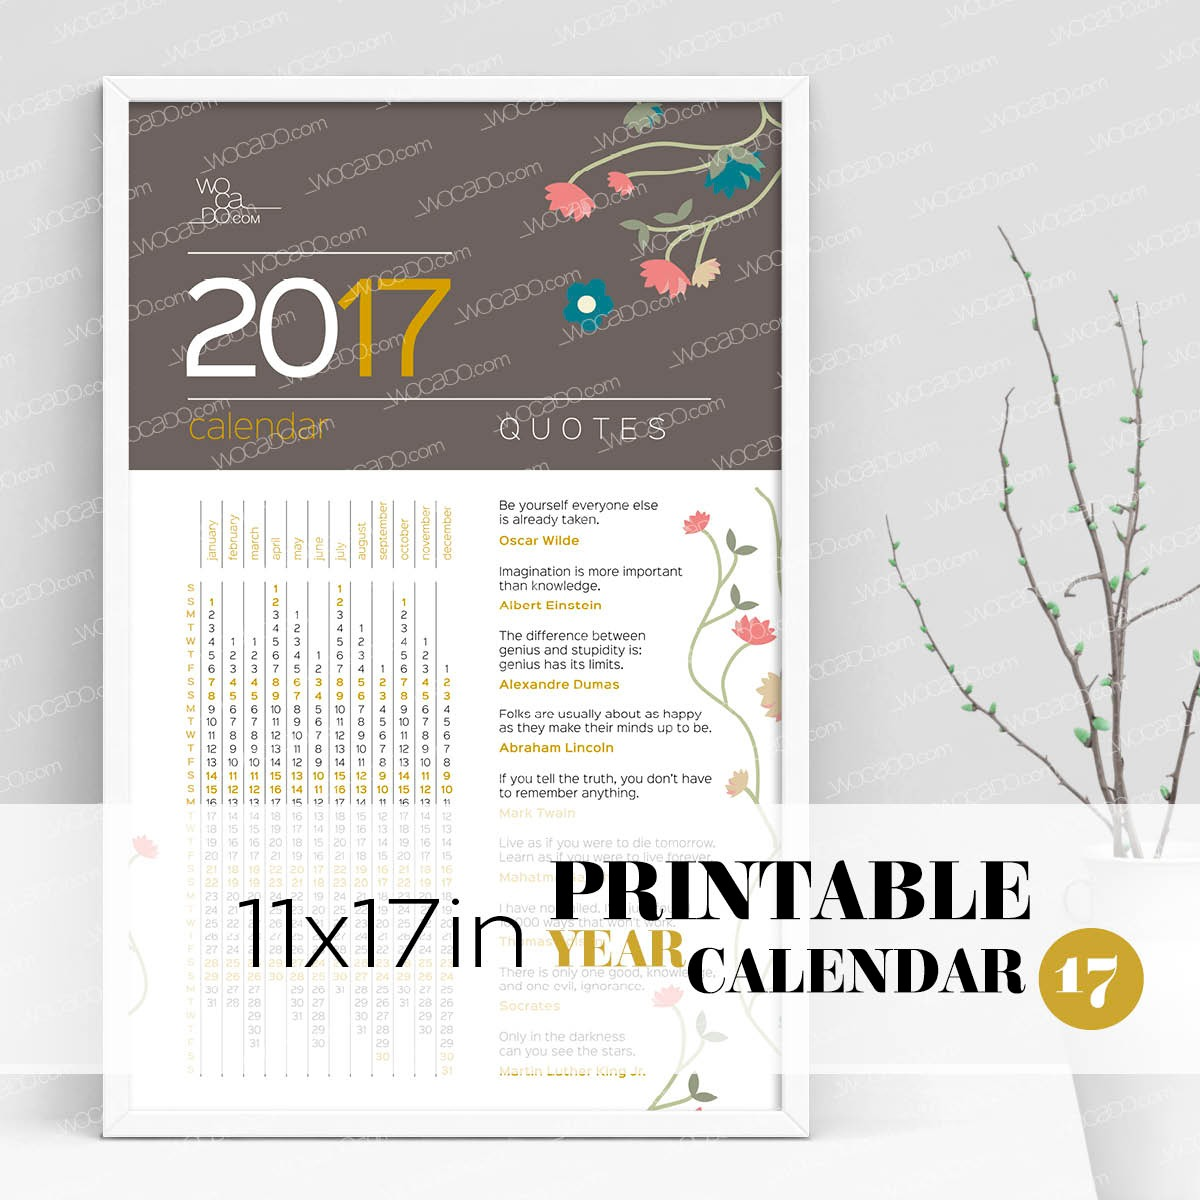 Quotes For An Awesome Year – Full Year Printable Calendar 2017 - 11x17 Poster, Flower Decoration